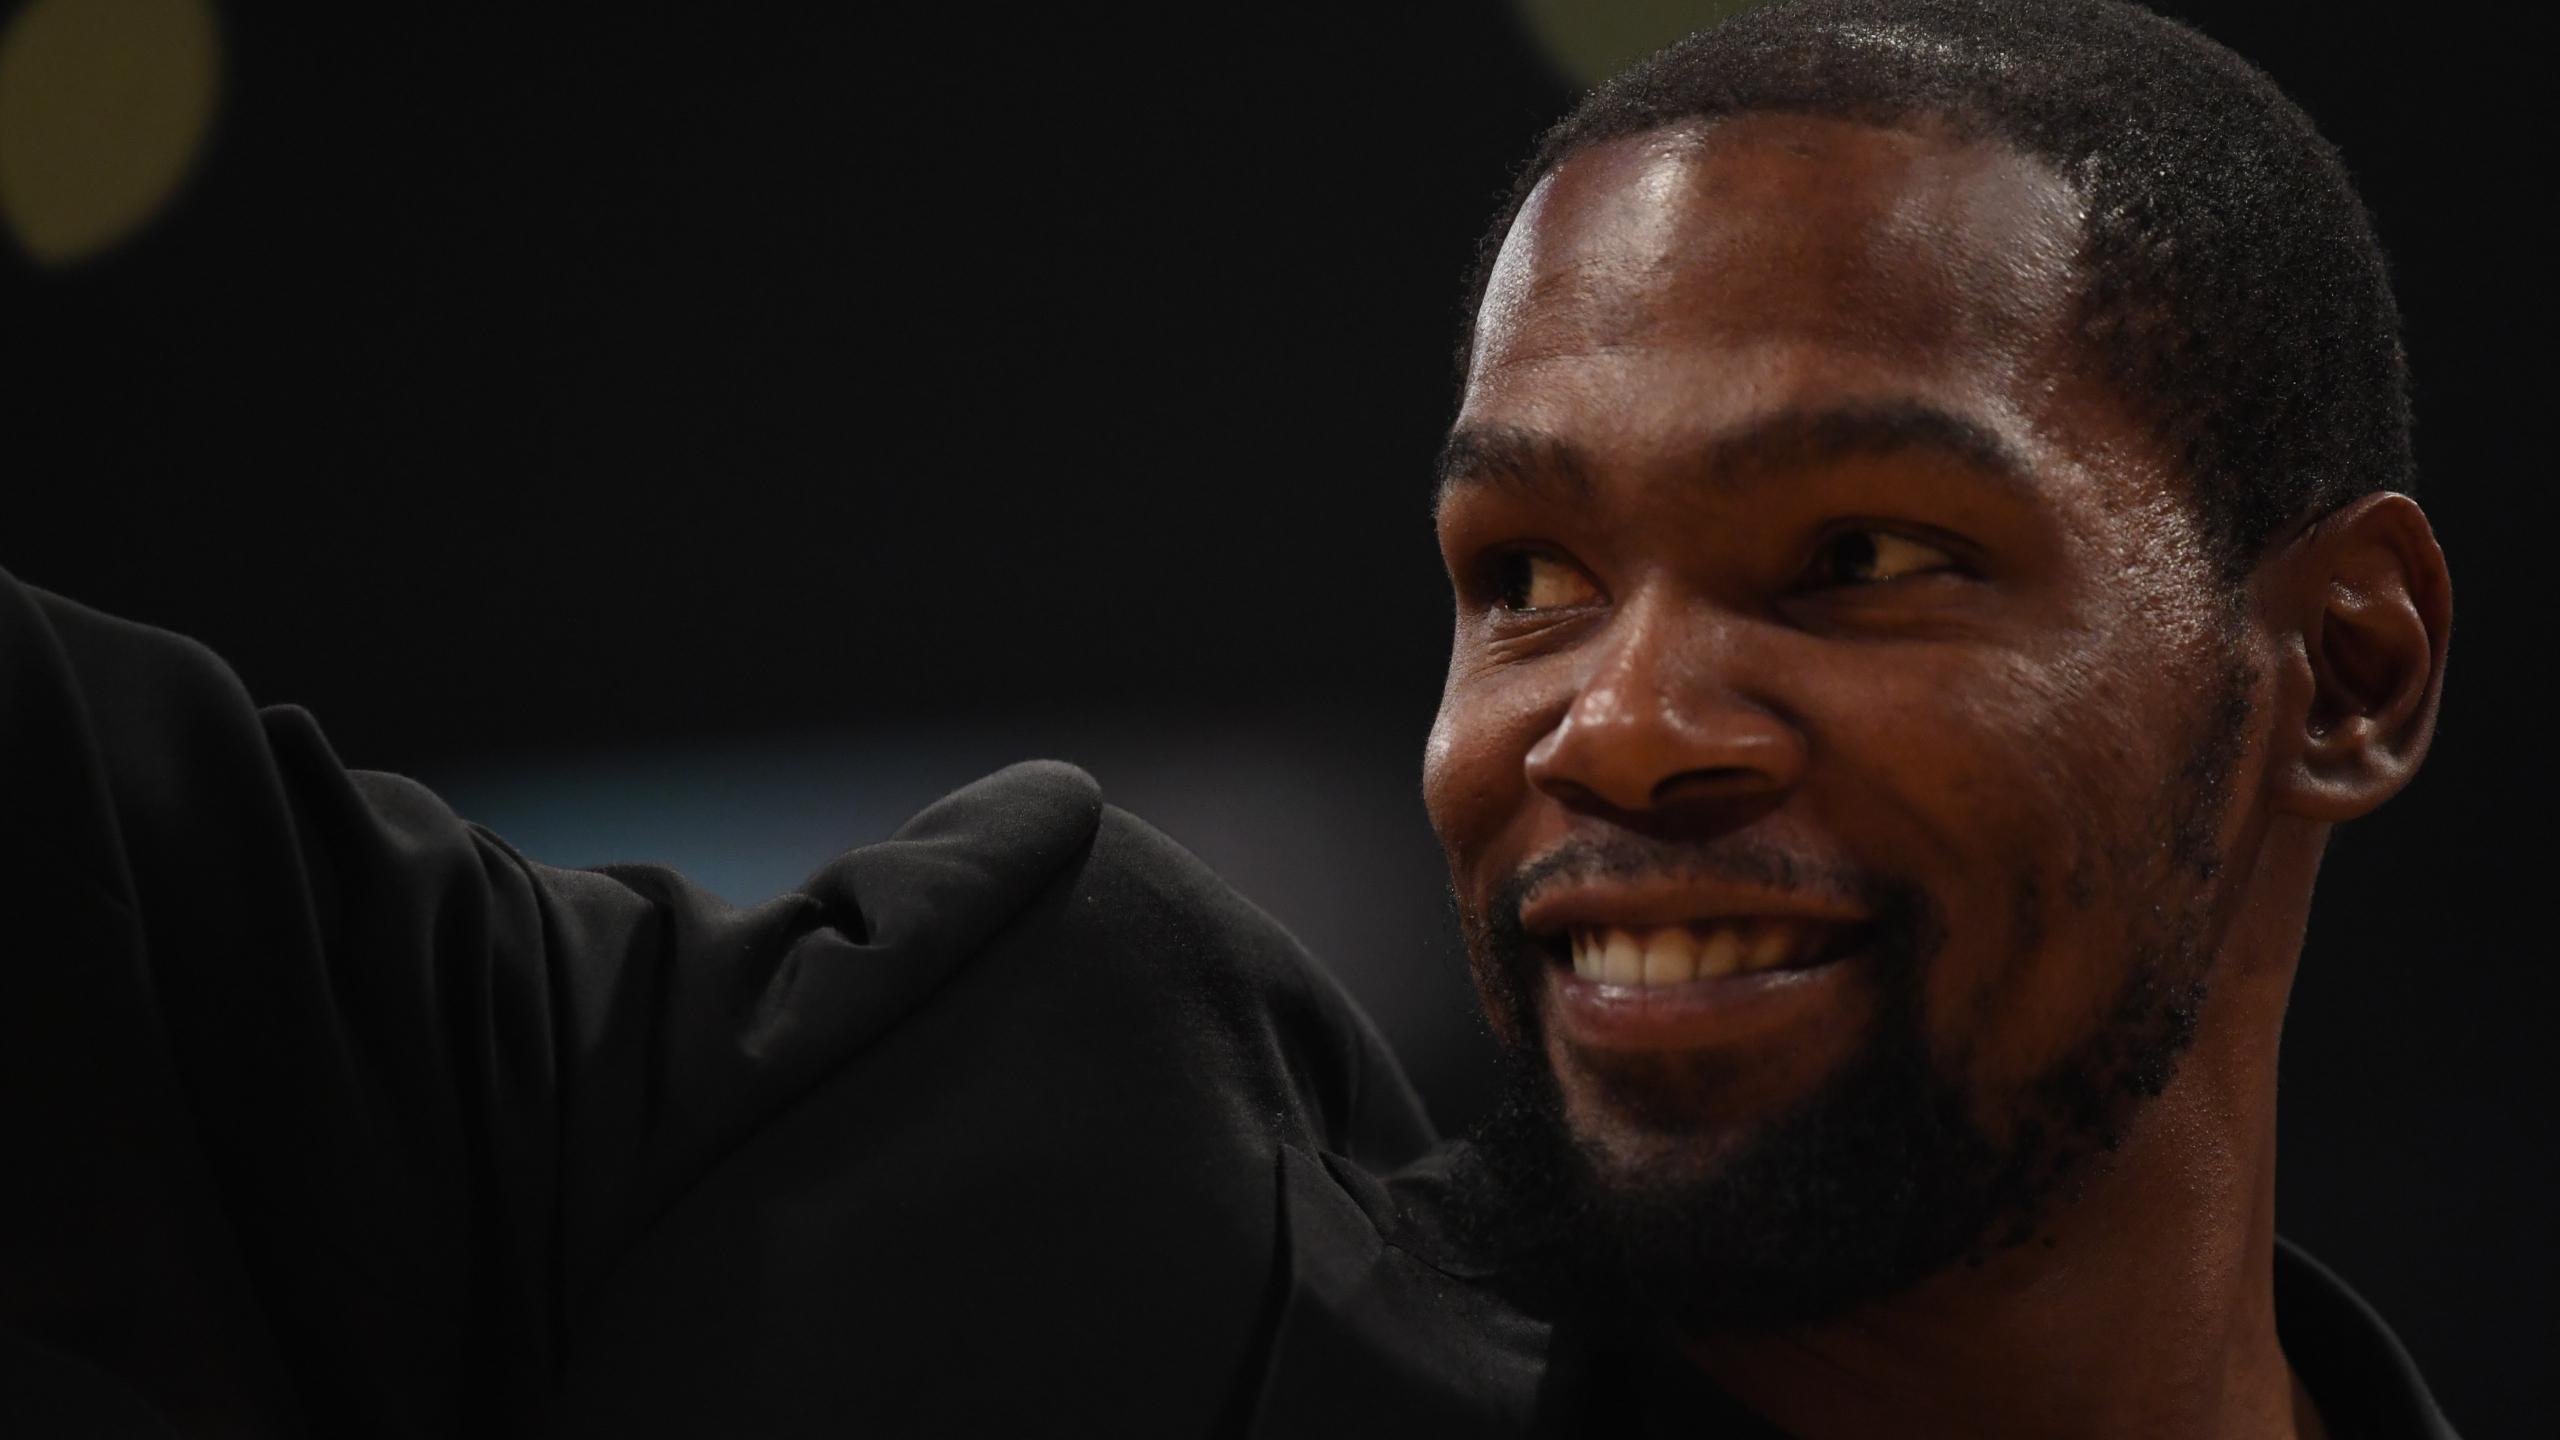 Kevin Durant of the Brooklyn Nets, sidelined by injury, smiles during a game against the Los Angeles Lakers at Staples Center on March 10, 2020. (Credit: Harry How / Getty Images)